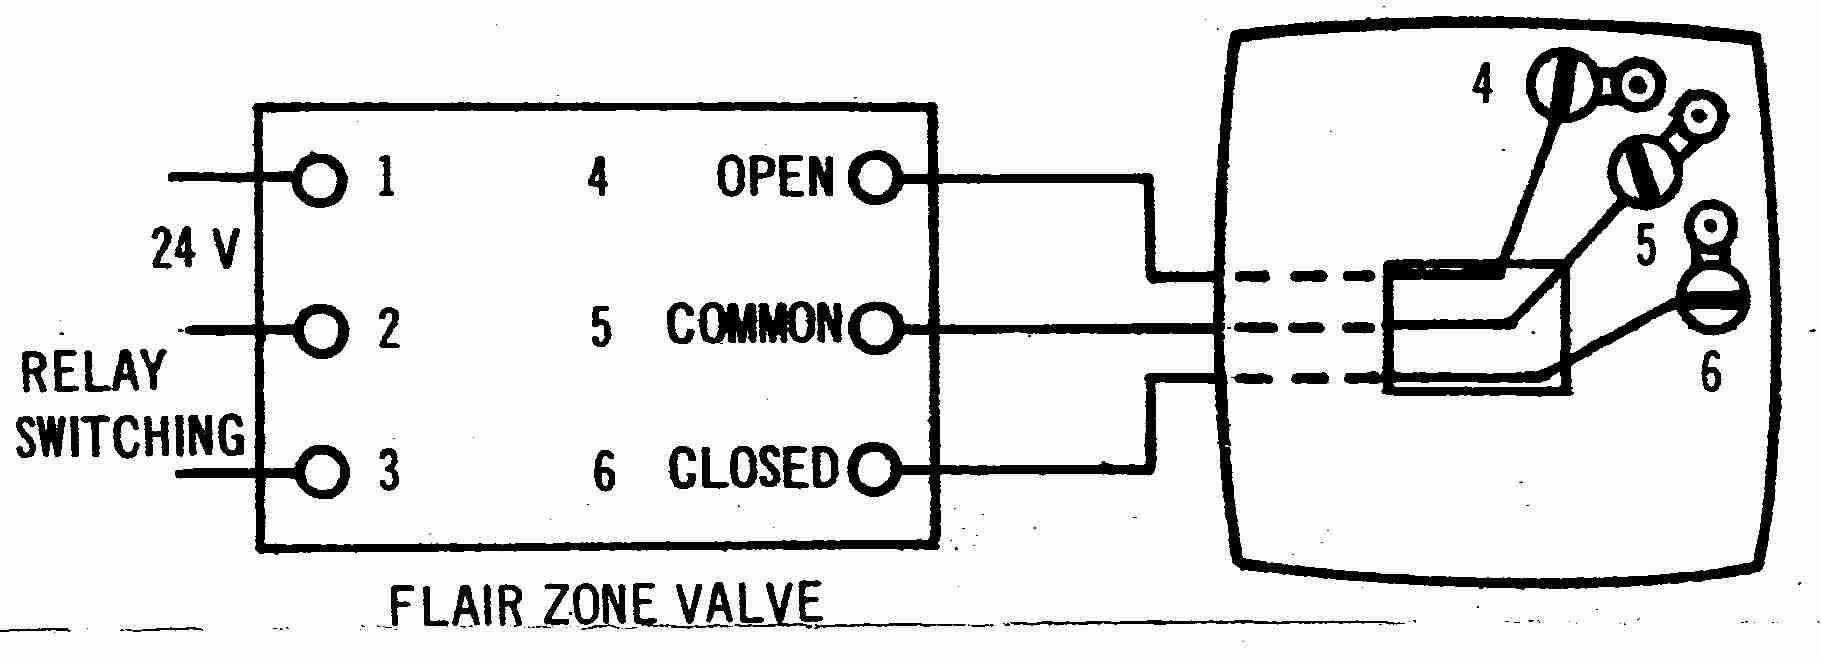 room thermostat wiring diagrams for hvac systems flair 3 wire thermostat wiring controlling a zone valve